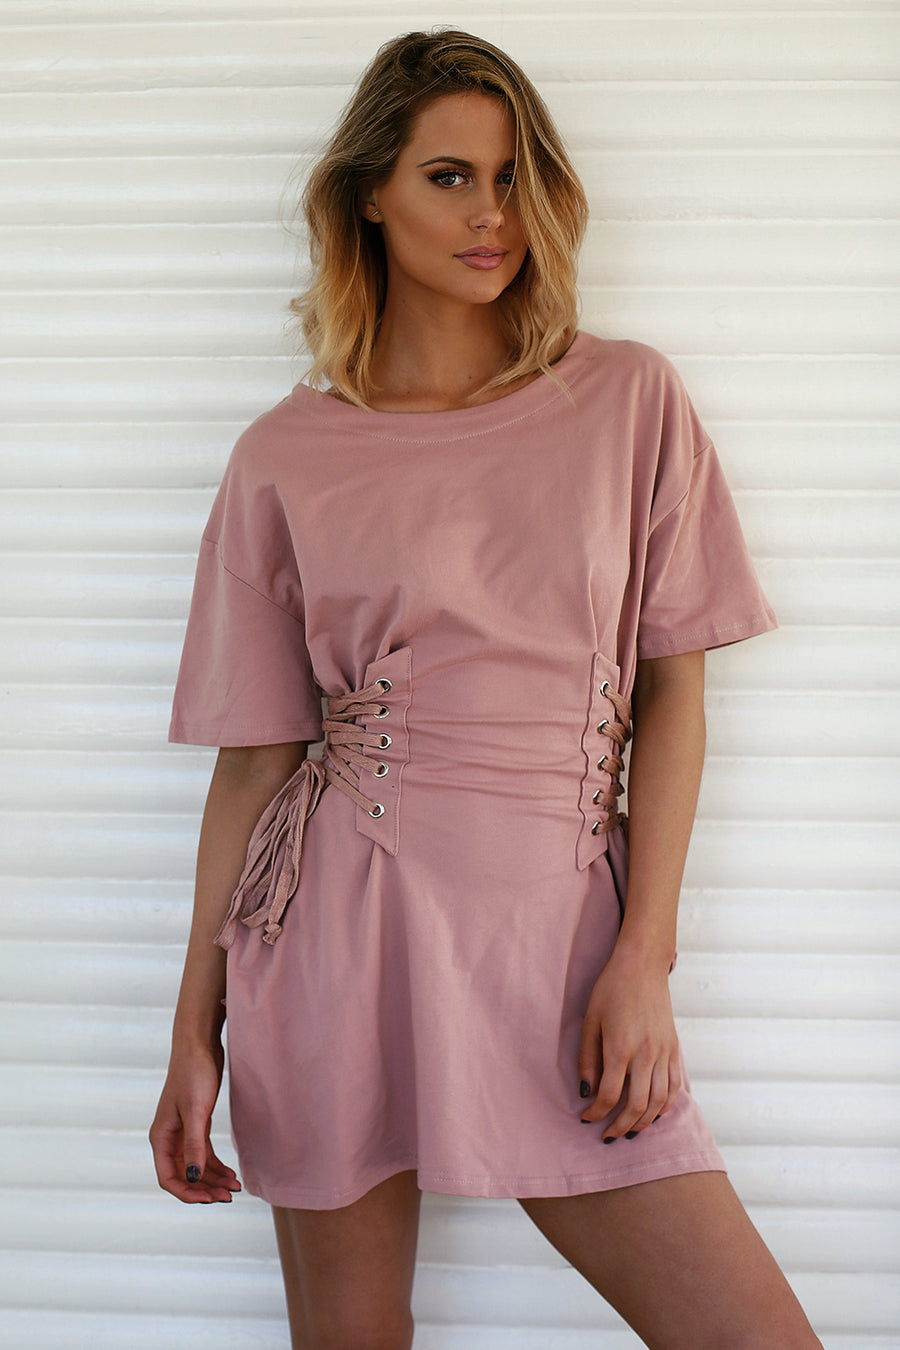 Ariana Corset Tee Dress Pink - HER Empire Fashion Boutique Terrigal & Online